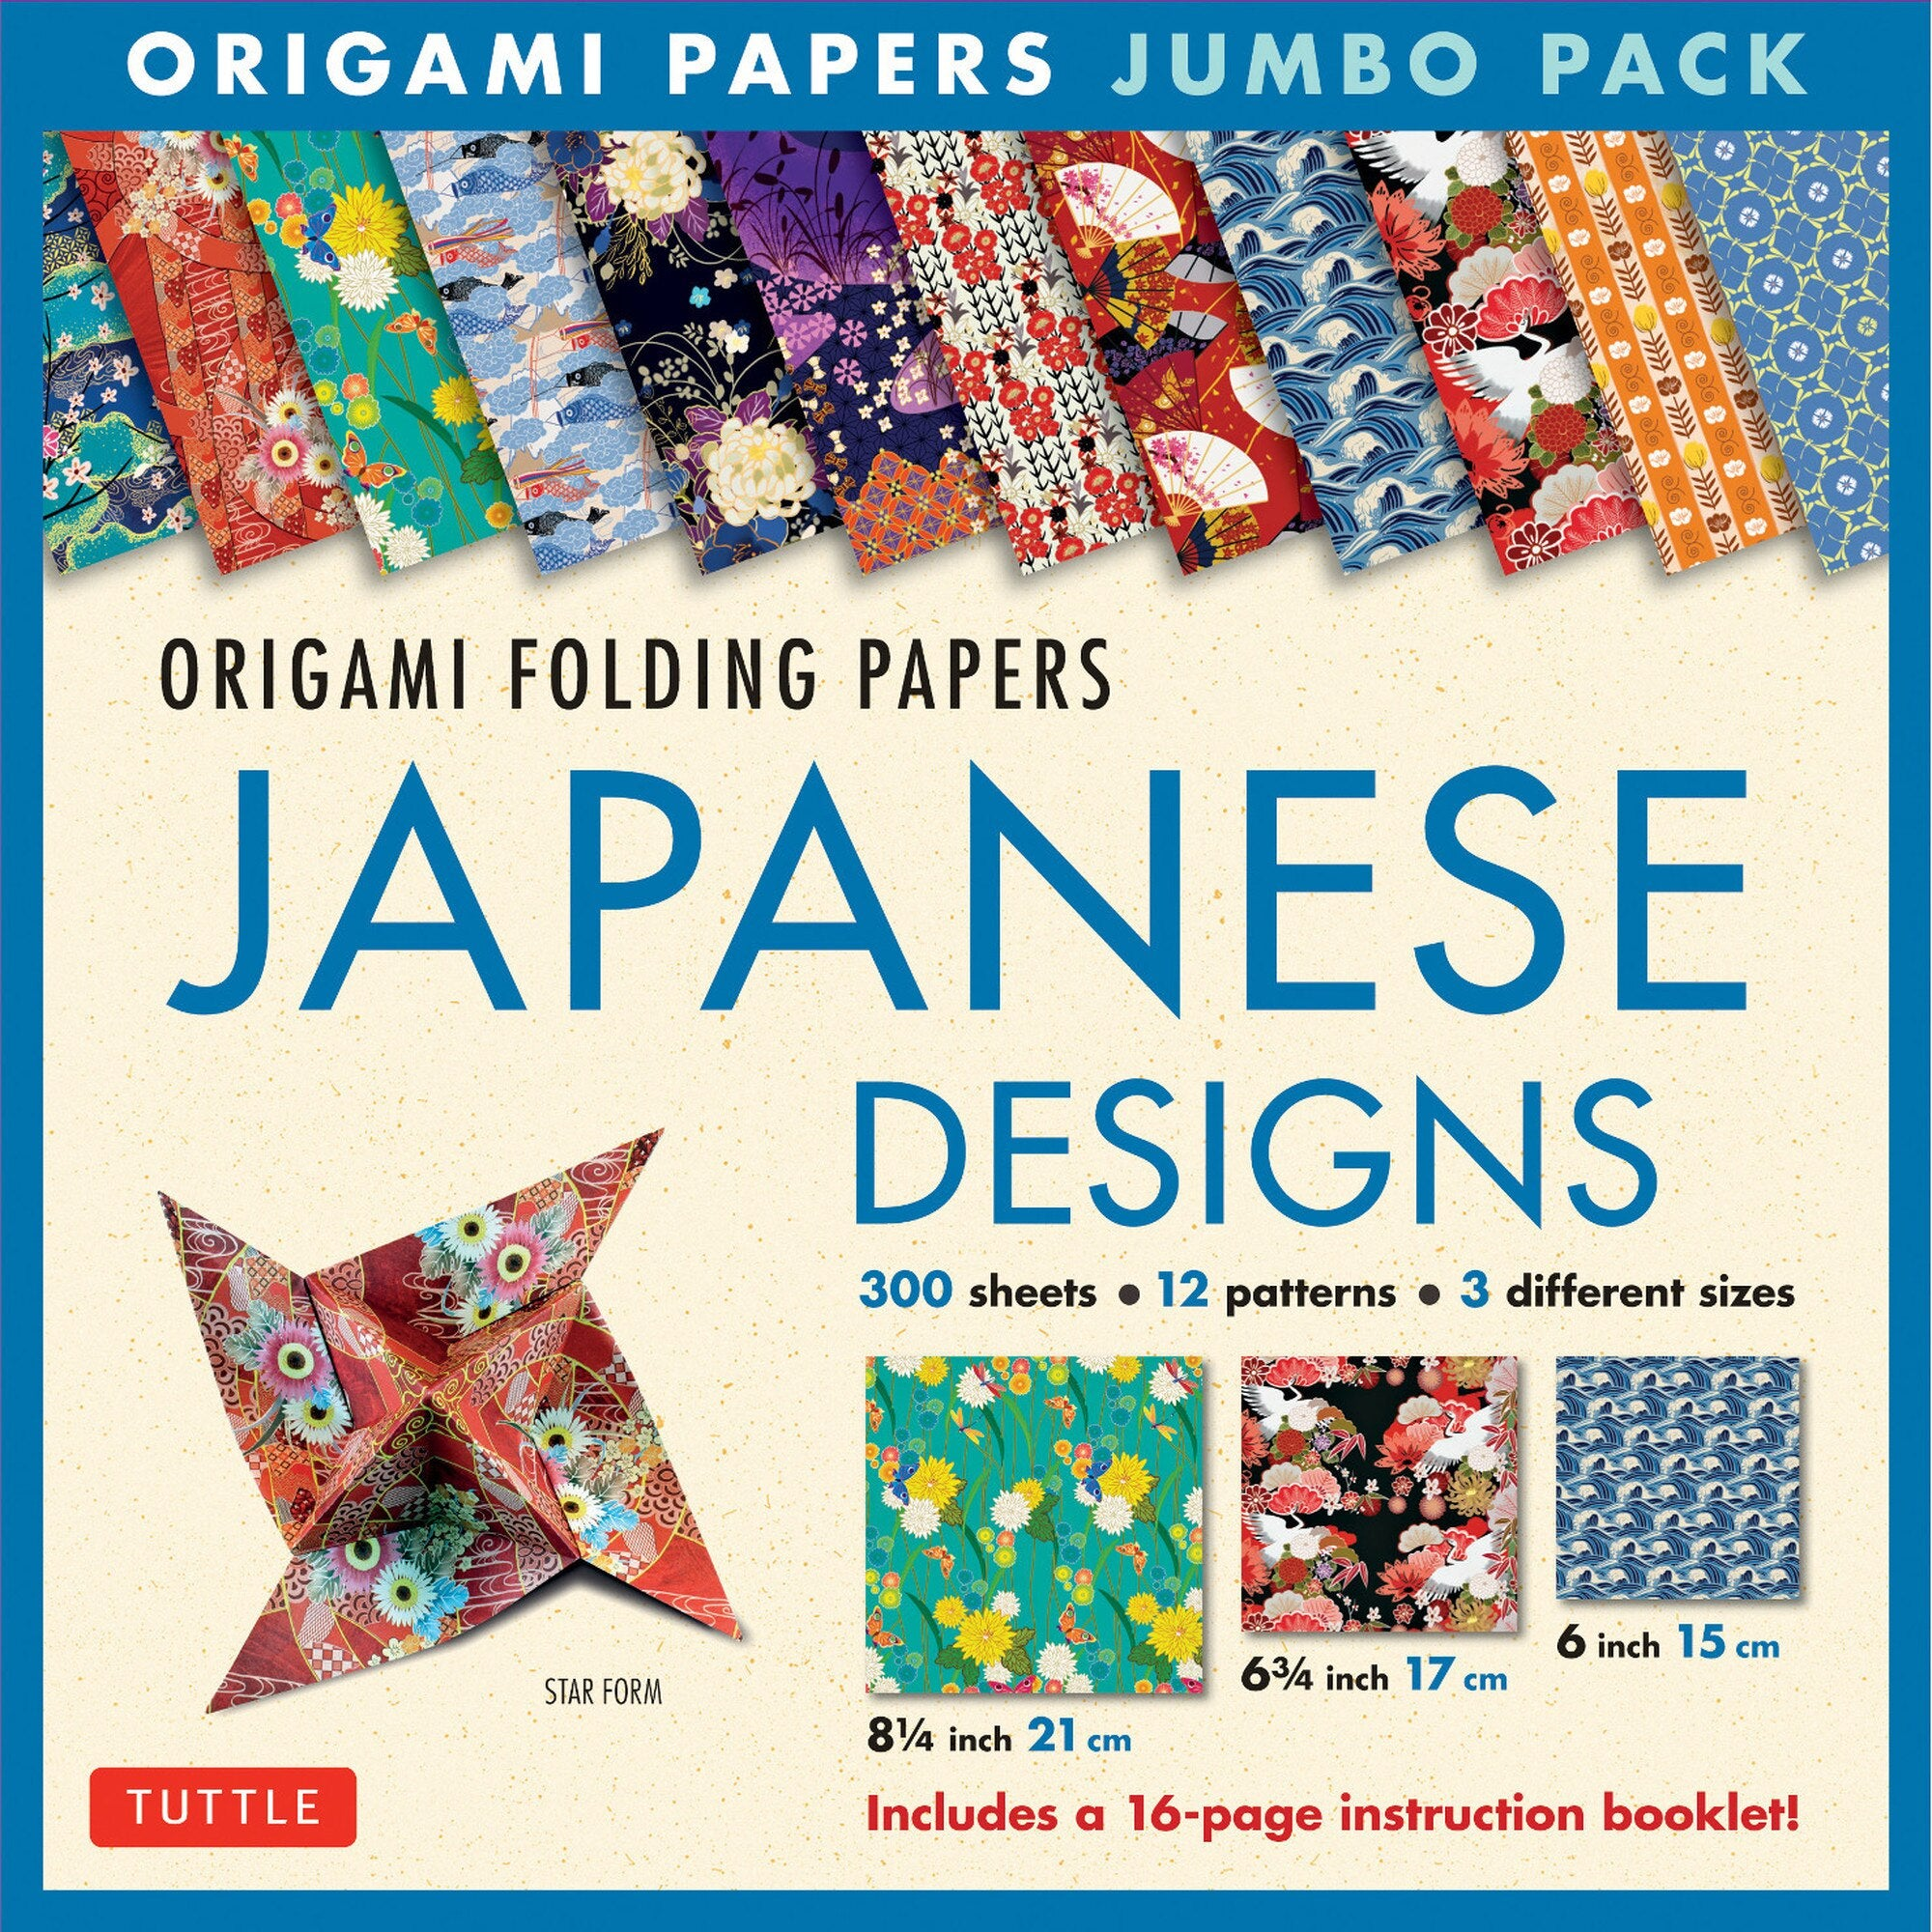 Origami Folding Papers: Japanese Designs